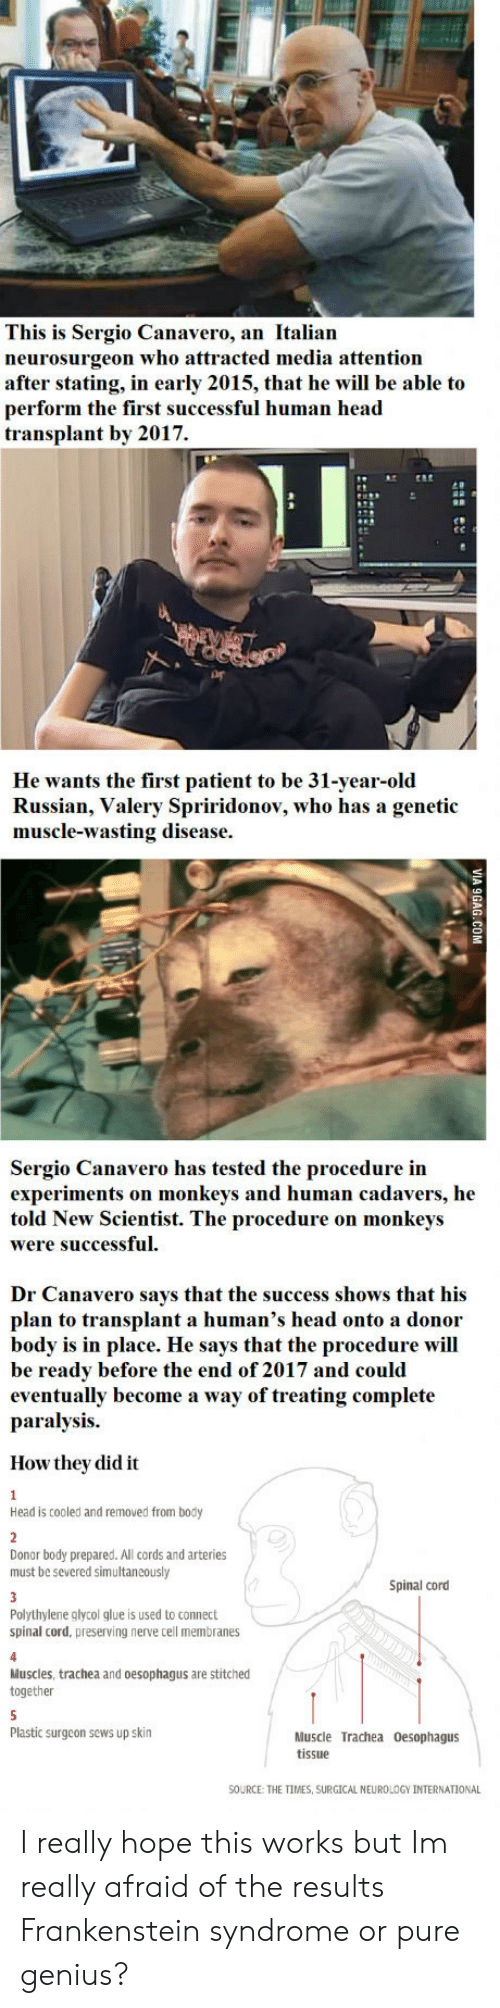 neurology: This is Sergio Canavero, an Italian  neurosurgeon who attracted media attention  after stating, in early 2015, that he will be able to  perform the first successful human head  transplant by 2017.  He wants the first patient to be 31-year-old  Russian, Valery Spriridonov, who has a genetic  muscle-wasting disease.  Sergio Canavero has tested the procedure in  experiments on monkeys and human cadavers, he  told New Scientist. The procedure on monkeys  were successful.  Dr Canavero says that the success shows that his  plan to transplant a human's head onto a donor  body is in place. He says that the procedure will  be ready before the end of 2017 and could  eventually become a way of treating complete  paralysis.  How they did it  Head is cooled and removed from body  Donor body prepared. All cords and arteries  must be severed simultaneously  Spinal cord  Polythylene glycol glue is used to connect  spinal cord, preserving nerve cell membranes  Muscles, trachea and oesophagus are stitched  together  Plastic surgeon sews up skin  Muscle Trachea Oesophagus  tissue  SOURCE: THE TIMES, SURGICAL NEUROLOGY İNTERNATİONAL I really hope this works but Im really afraid of the results Frankenstein syndrome or pure genius?